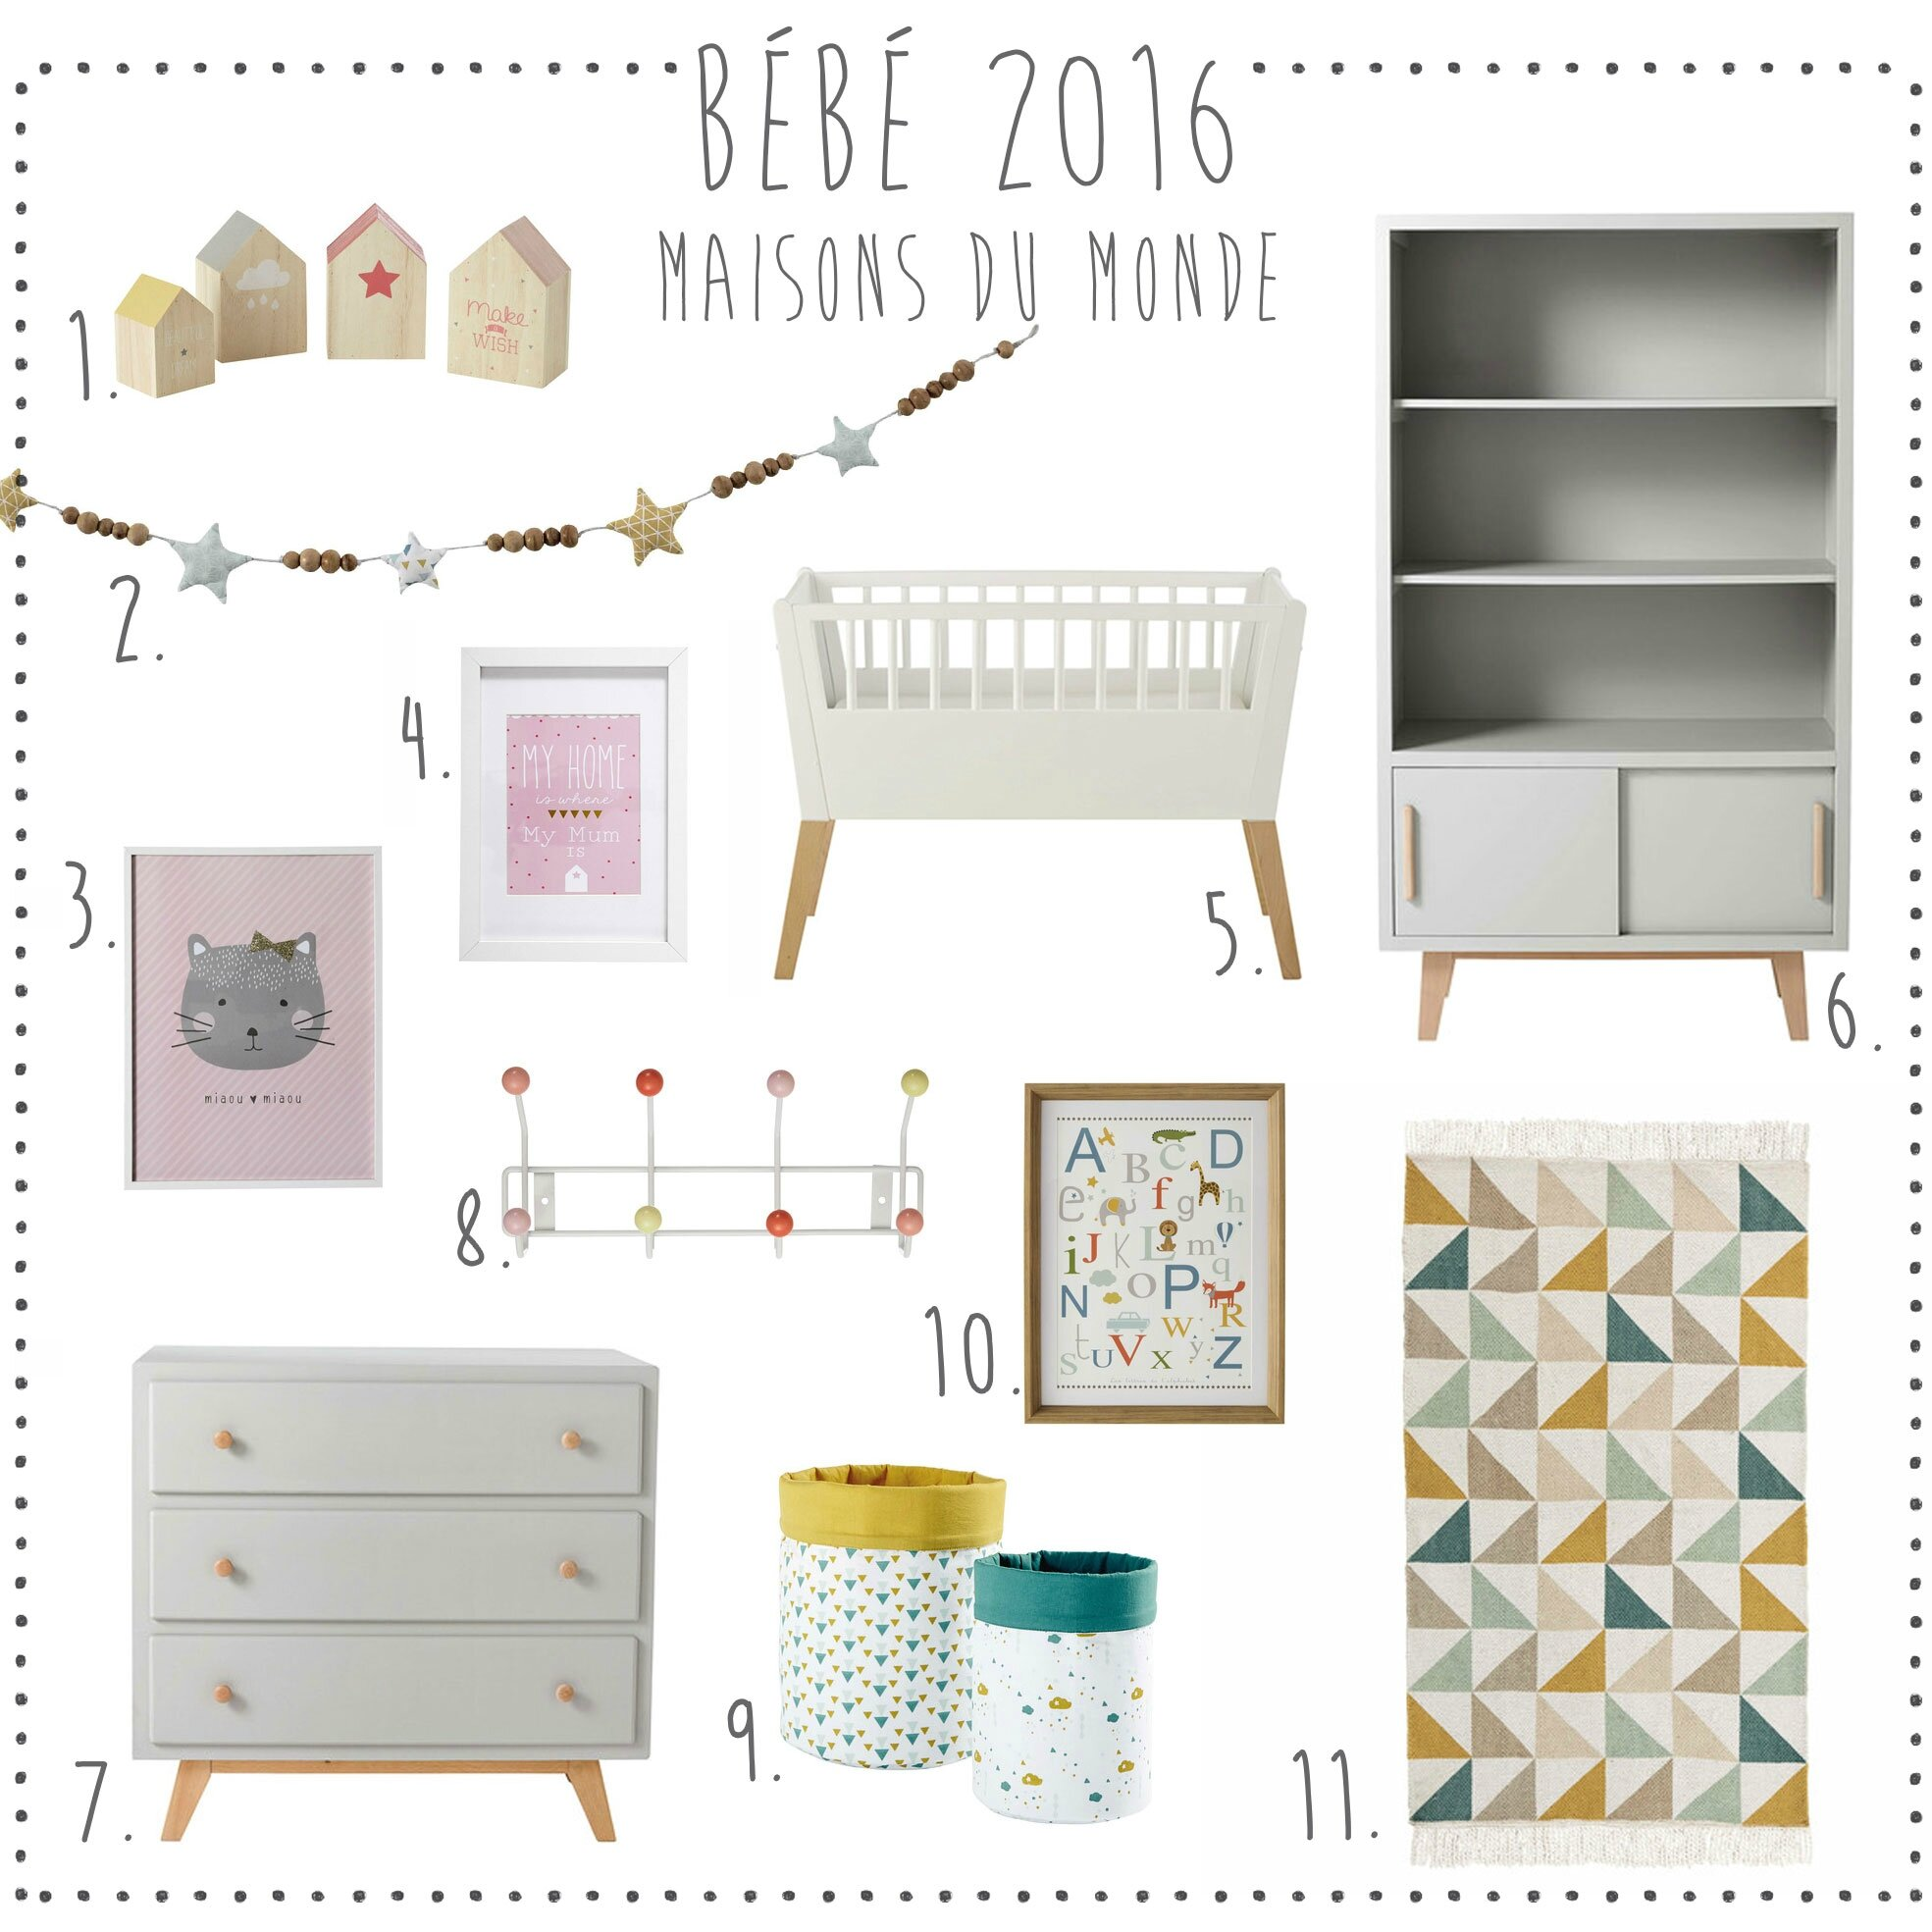 Nouveau catalogue junior 2016 maisons du monde deco for Catalogue deco